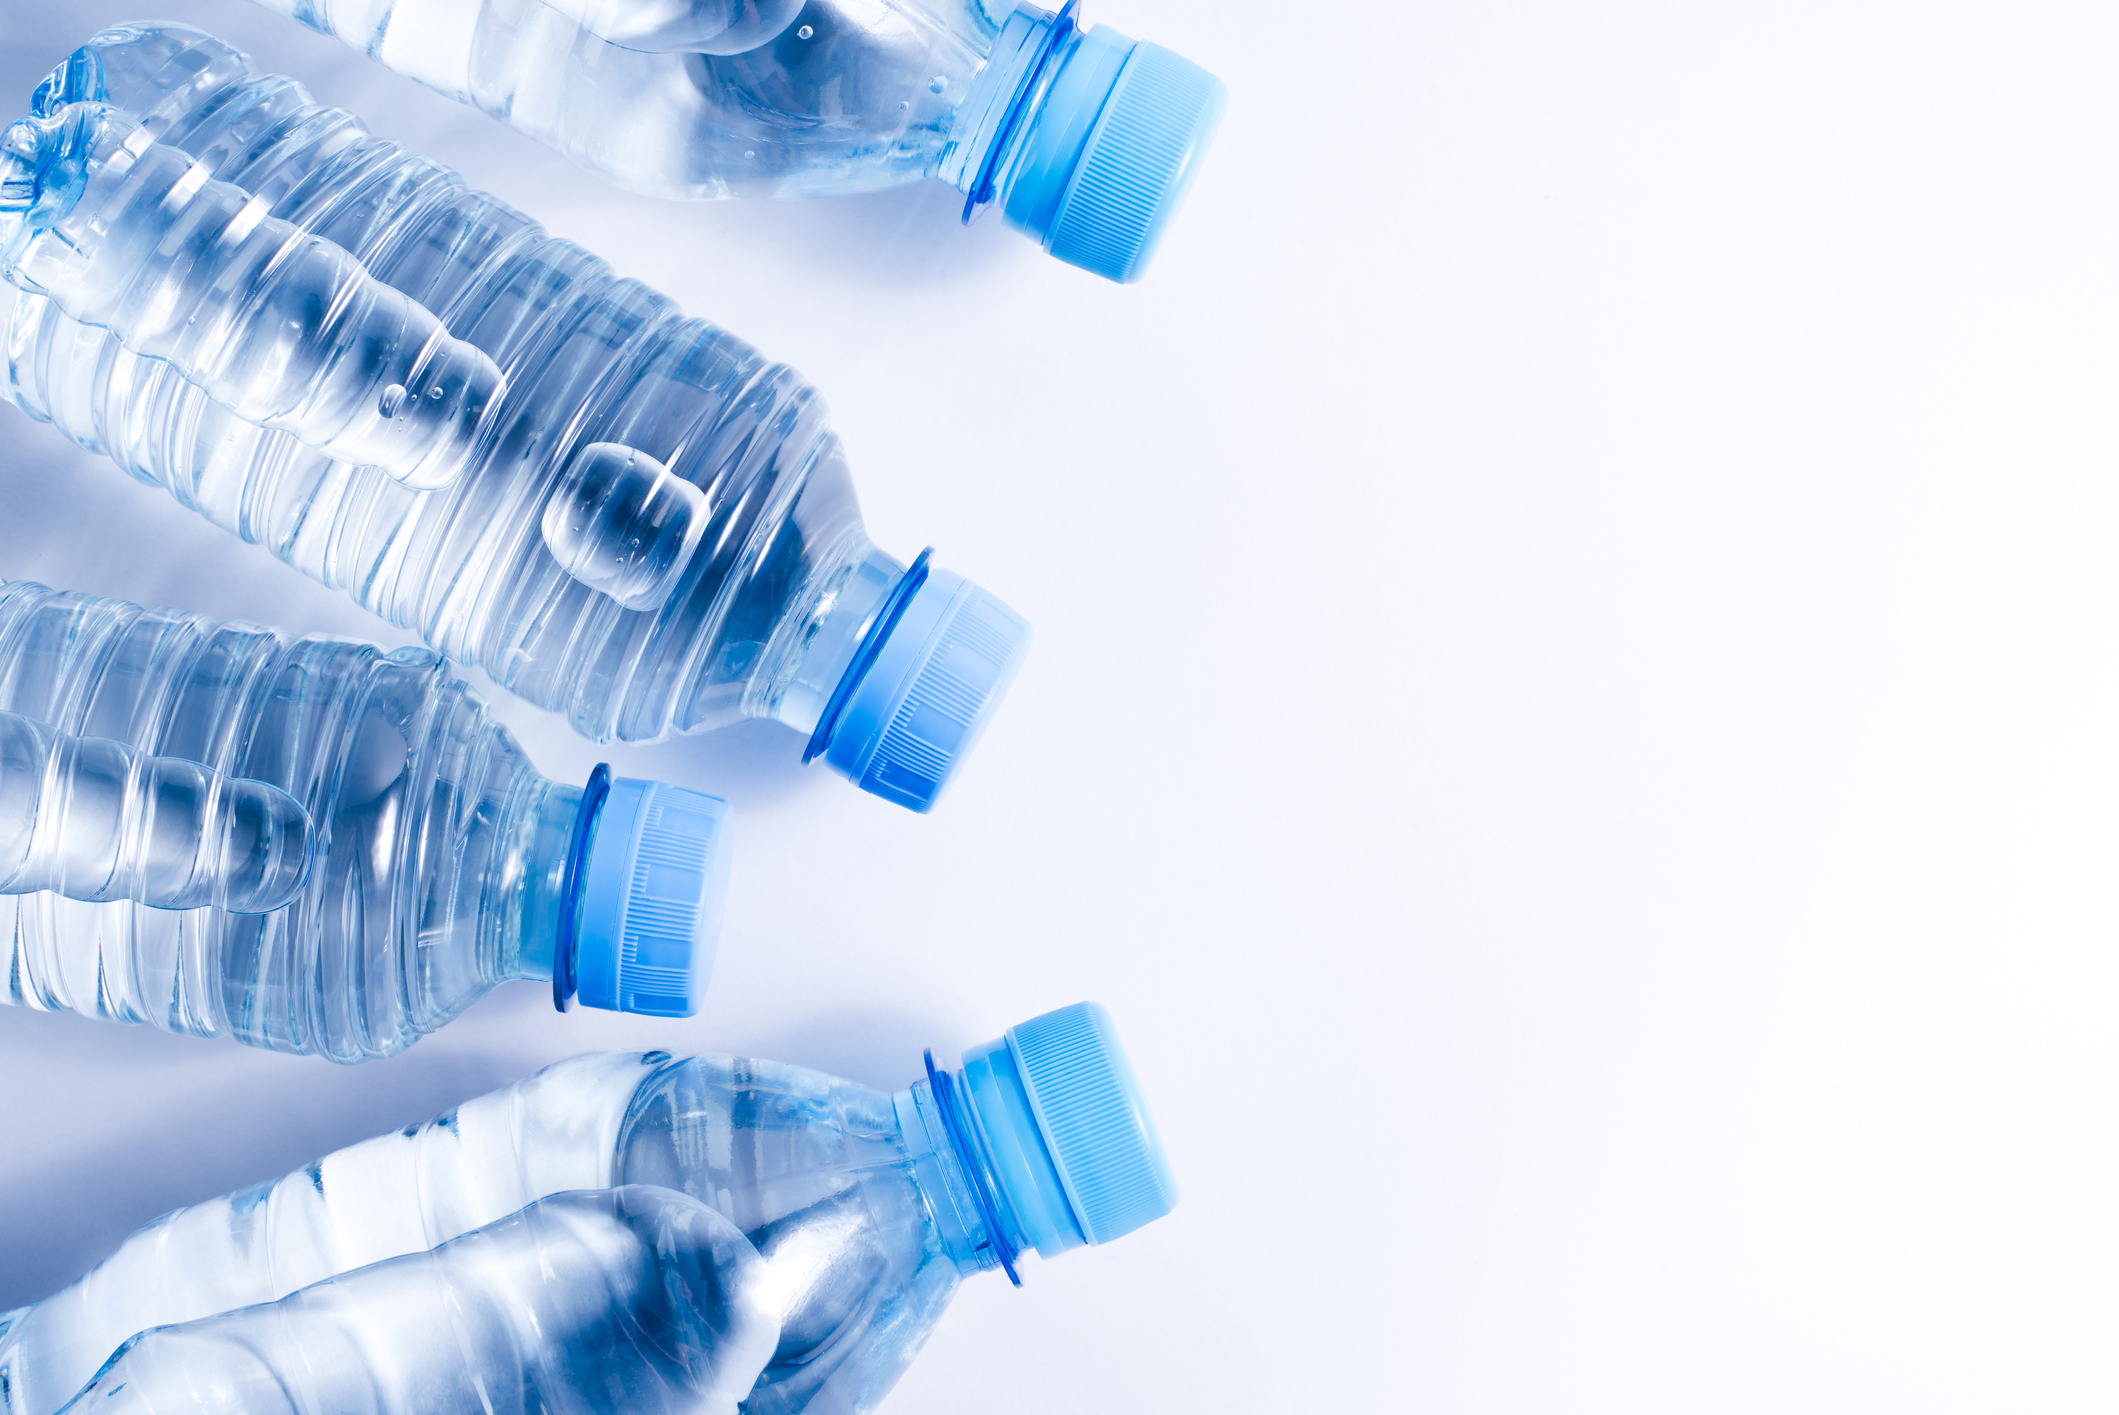 Several drinking water bottles on white background